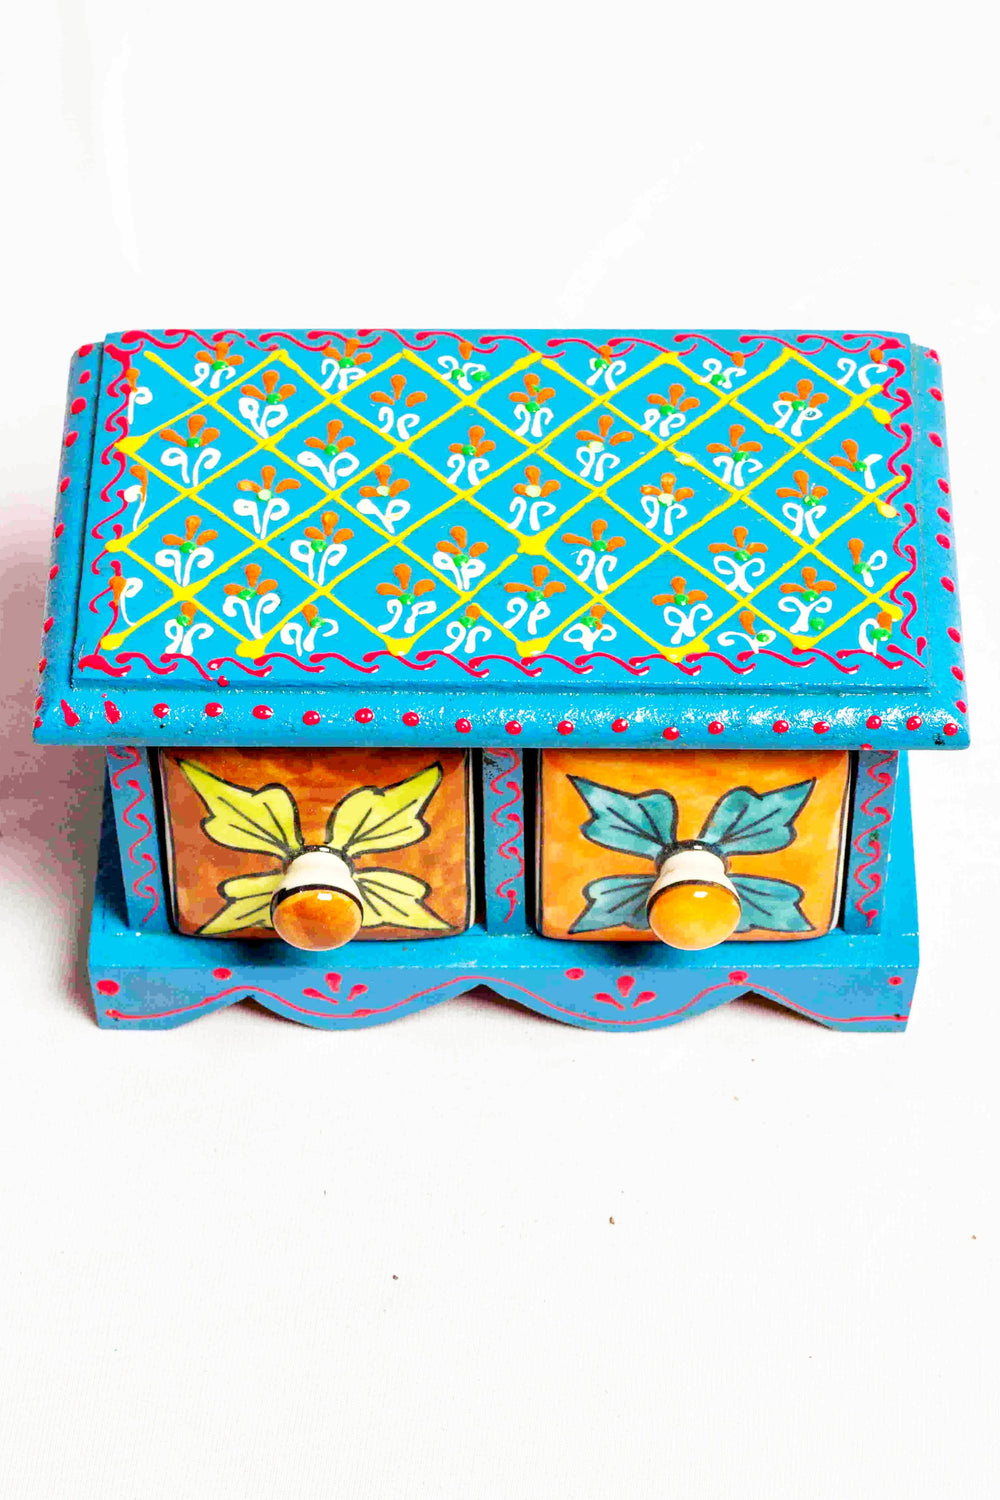 Chest of drawers in a blue framed wooden box with painted motifs, with 2 ceramic drawers